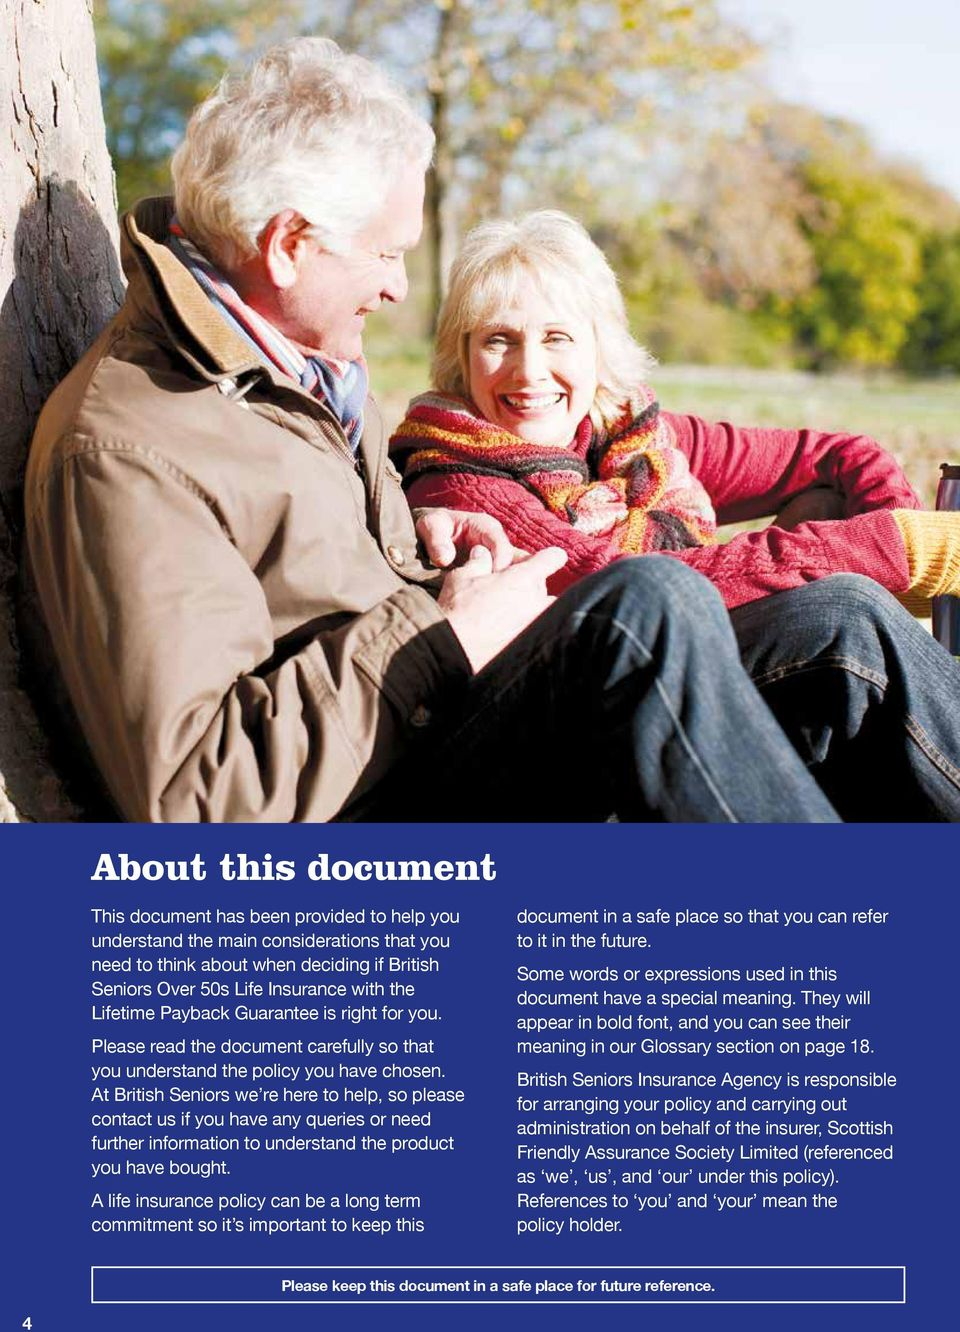 At British Seniors we re here to help, so please contact us if you have any queries or need further information to understand the product you have bought.